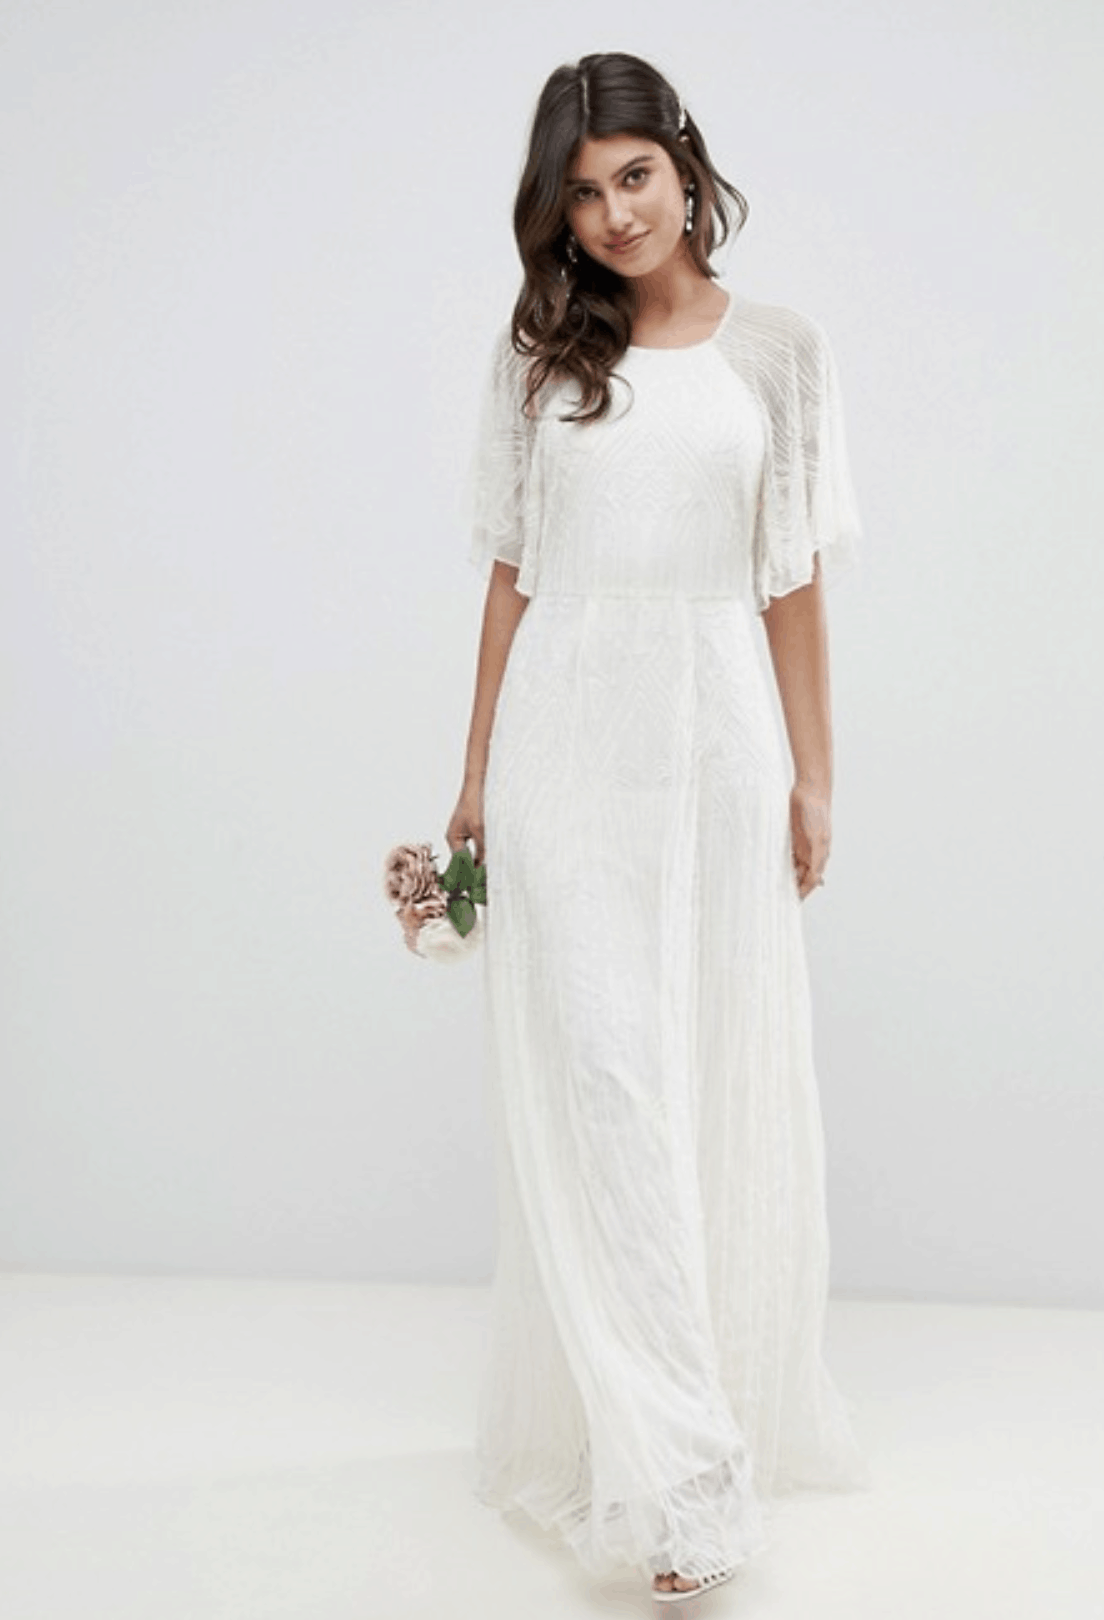 f1094863fad3 Cheap Affordable Bridal Gowns and Wedding Dresses ASOS Edition Deco  Embellished Wedding Dress